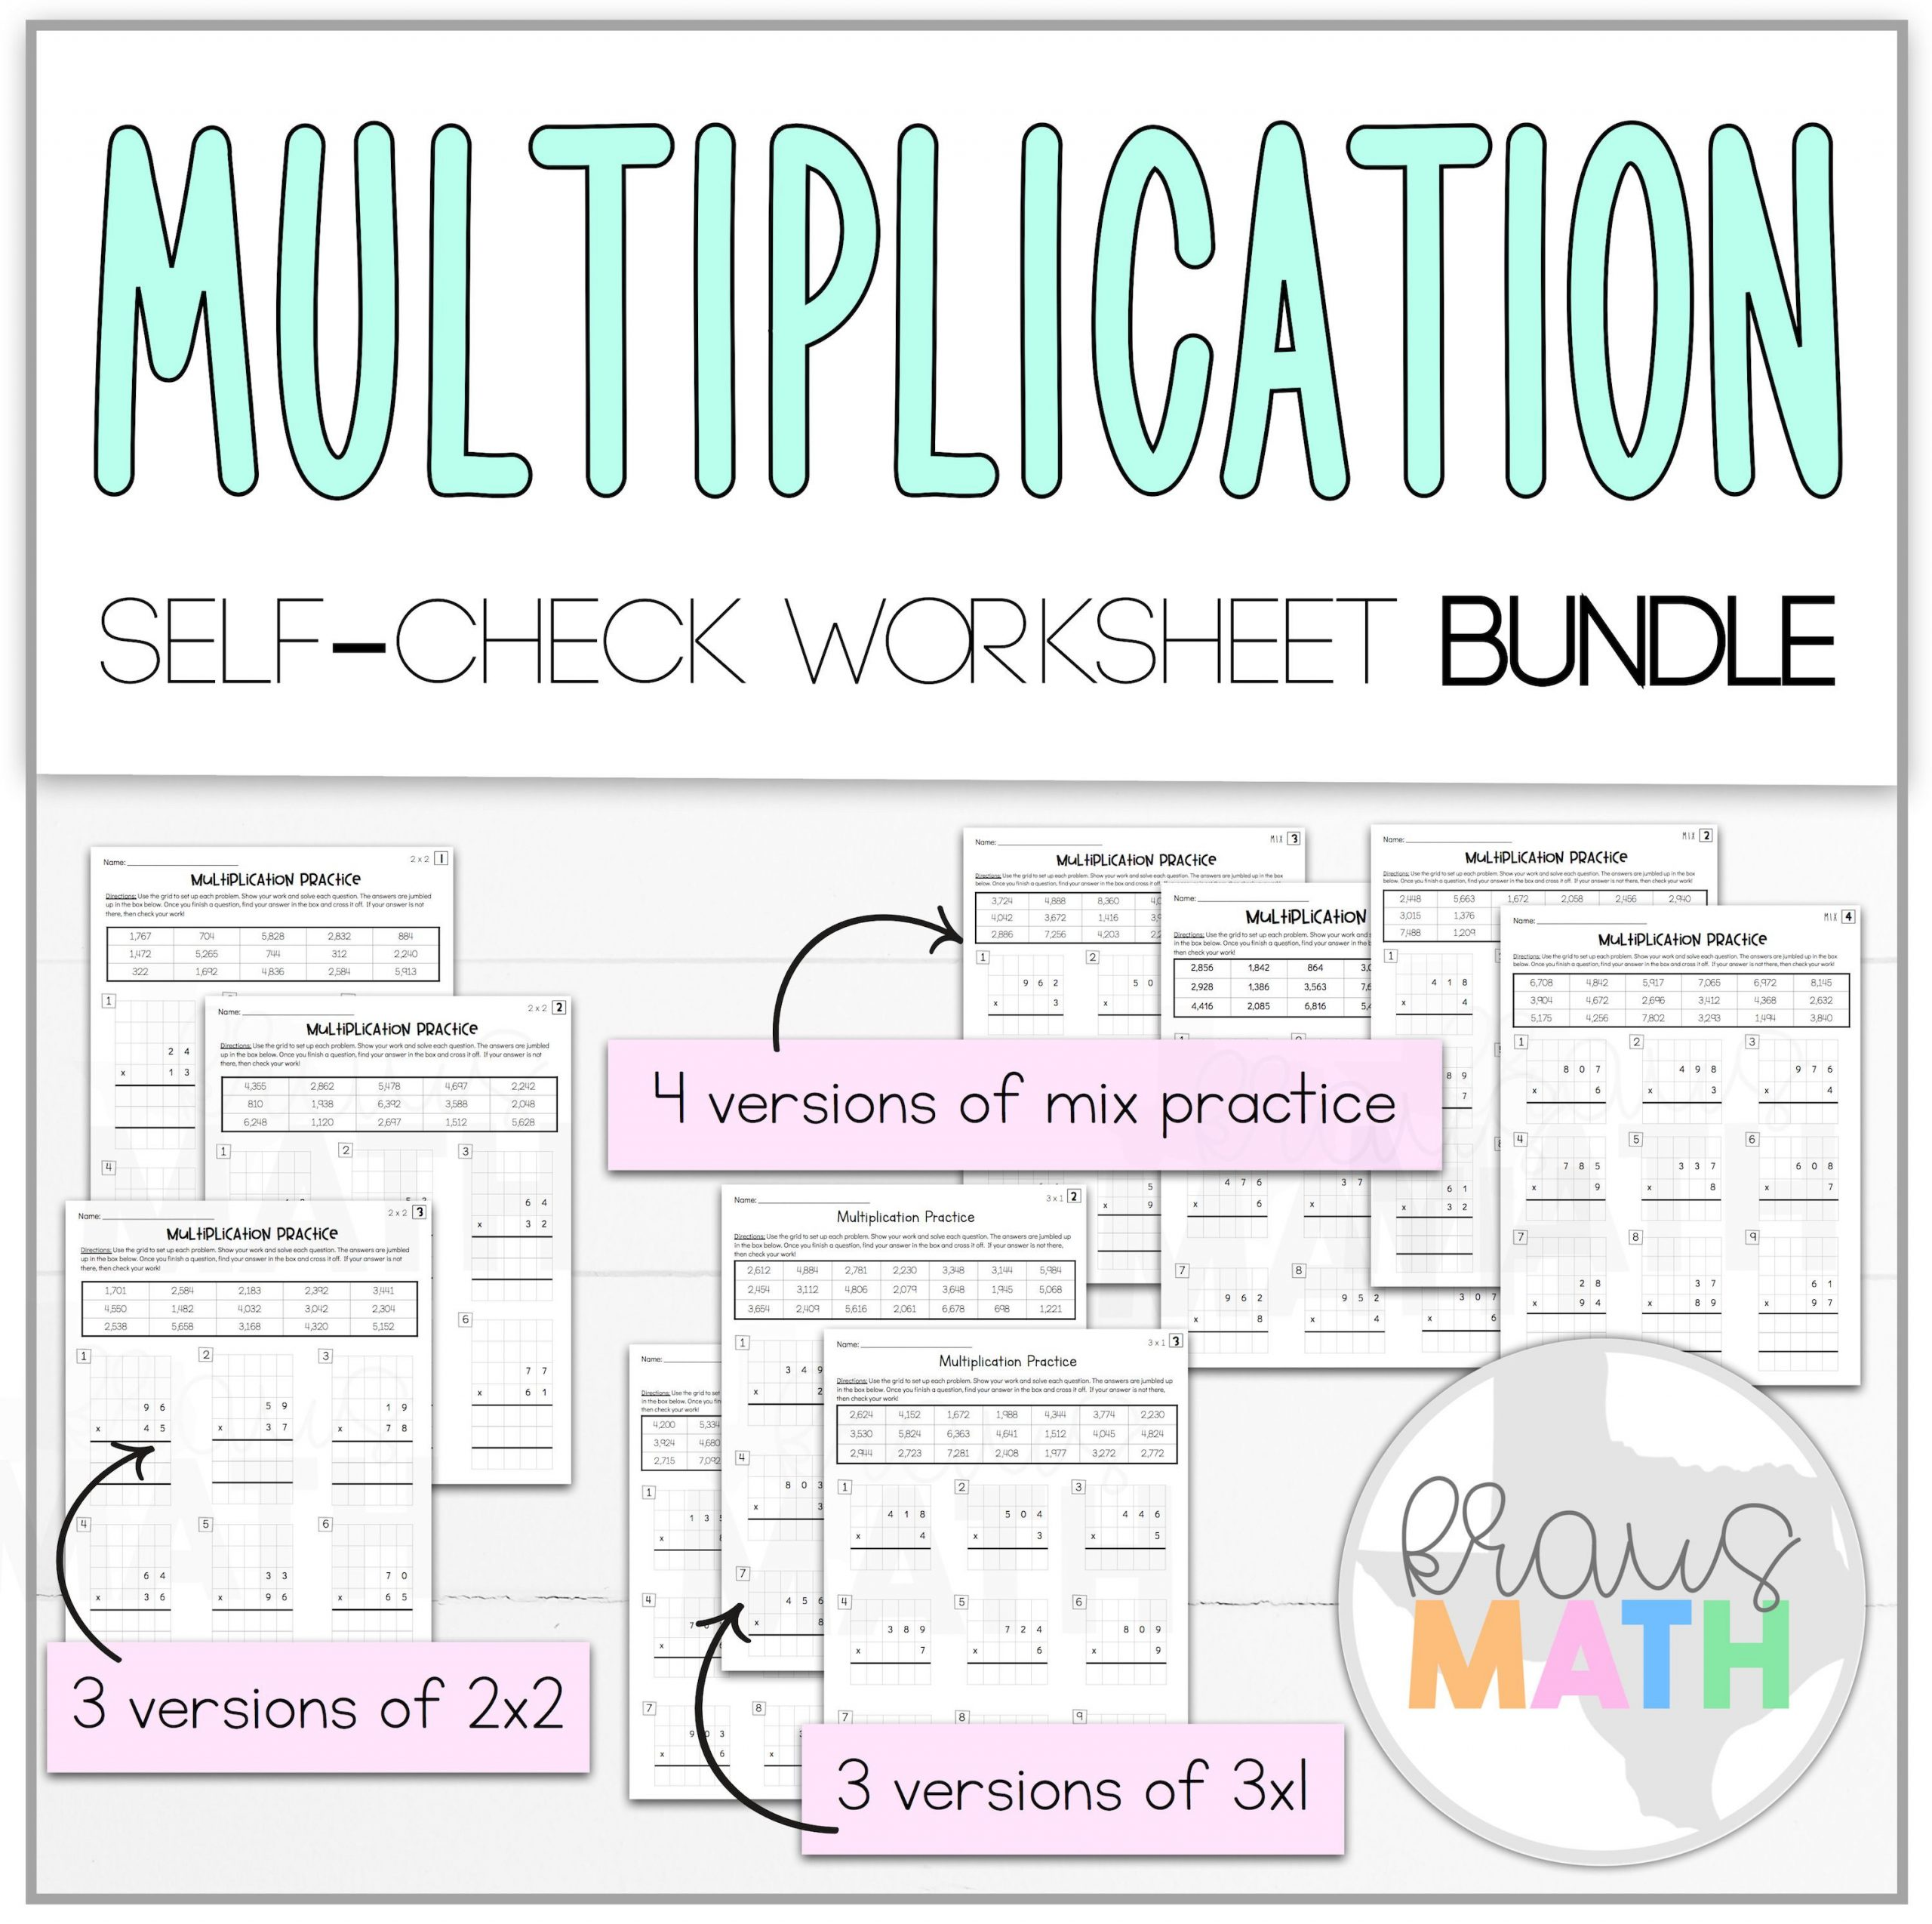 2nd Grade Teks Math Worksheets Multiplication 2x2 & 3x1 Self Check Worksheet Bundle Teks